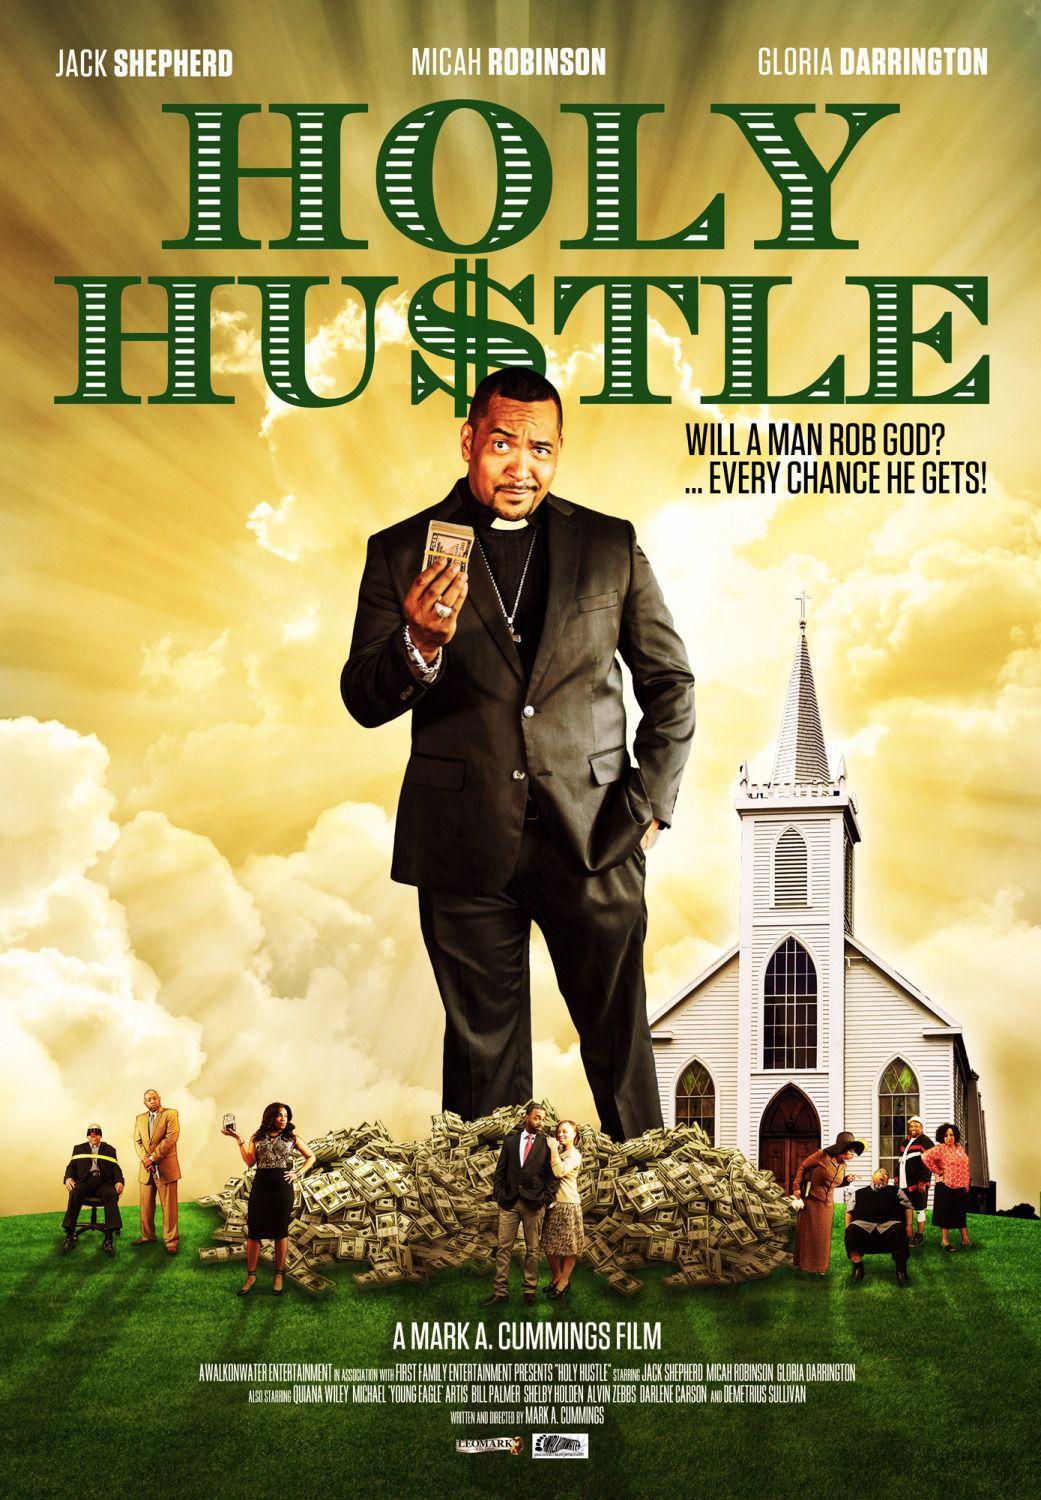 Holy Hustle - Cast: Jack Shepherd, Micah Robinson, Gloria Darrington - Will a man rob God ... Every chance he gets - film poster